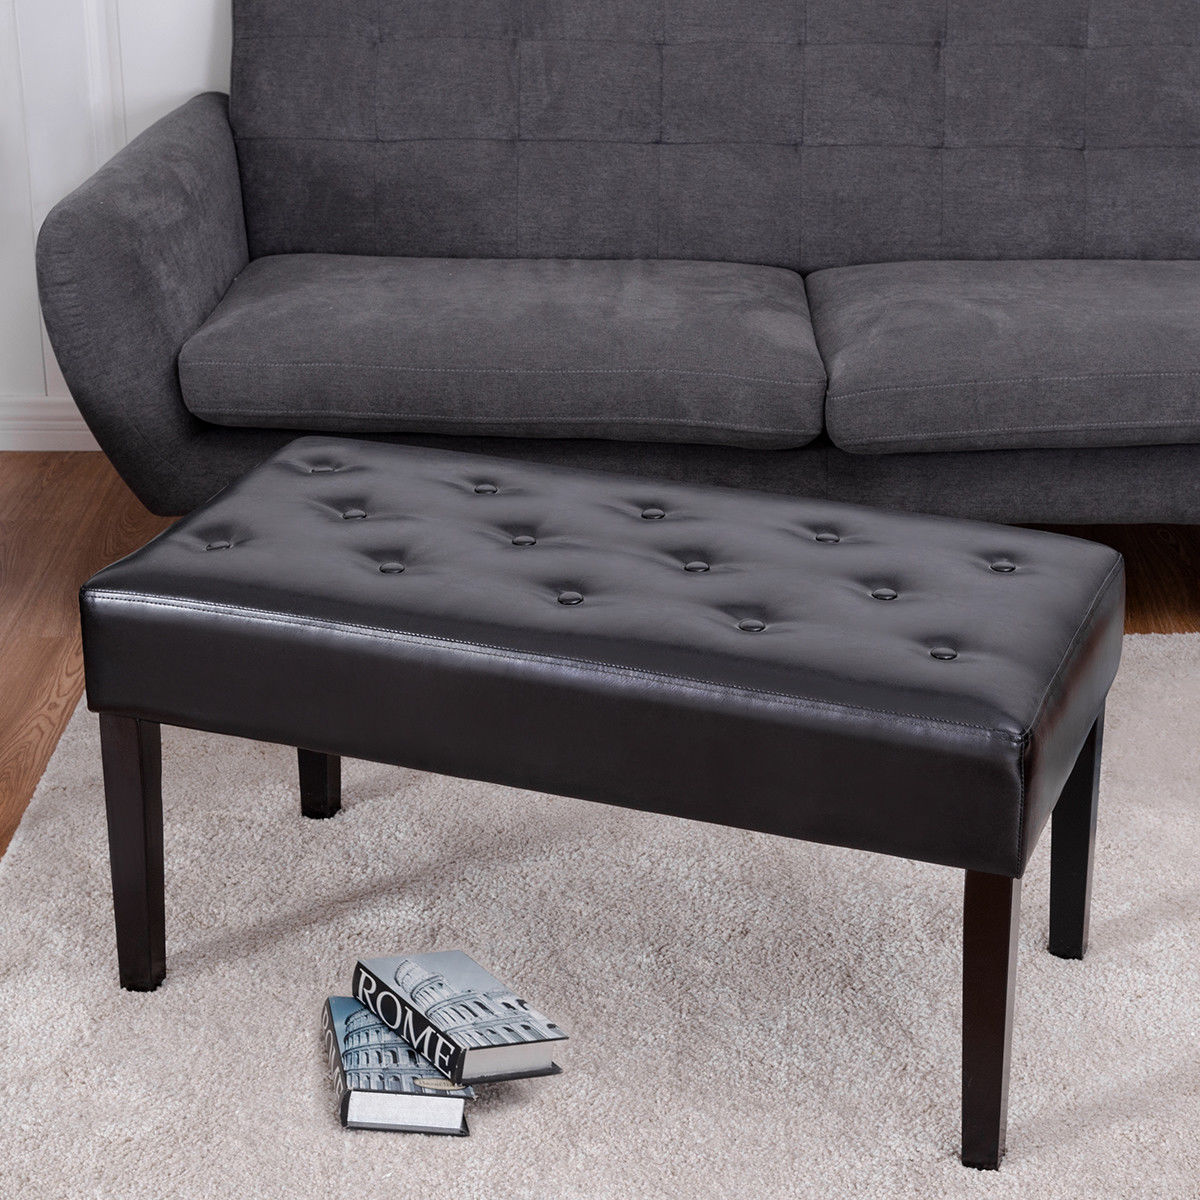 Costway Rectangle PU Leather Ottoman Bench Tufted Foot Rest Stool Solid Wood Legs Black